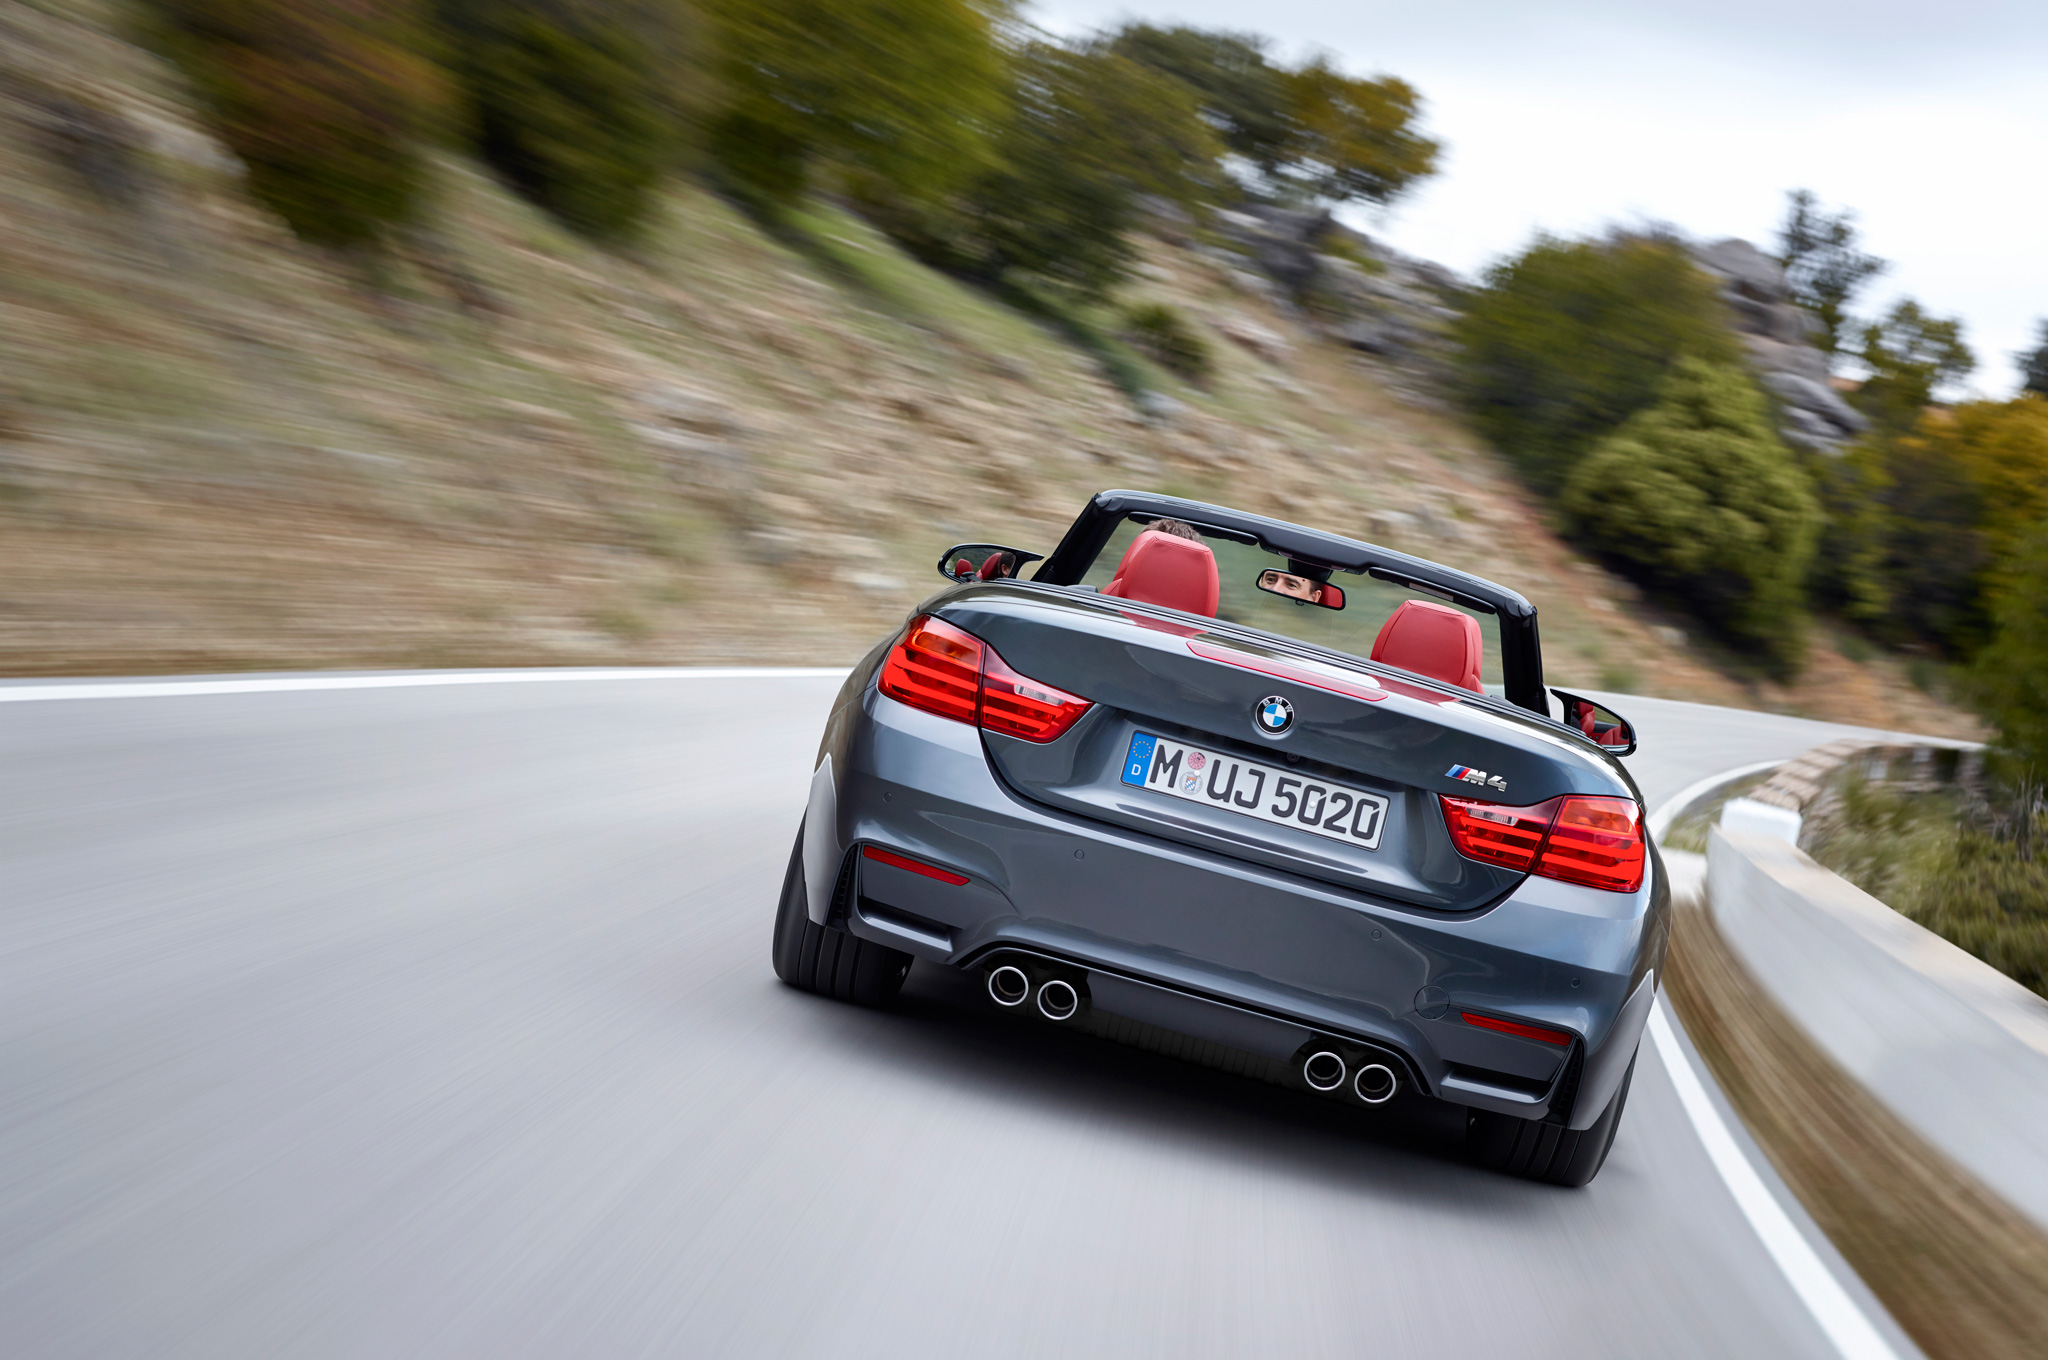 2015 Bmw M4 Convertible Rear View Performance (Photo 43 of 50)